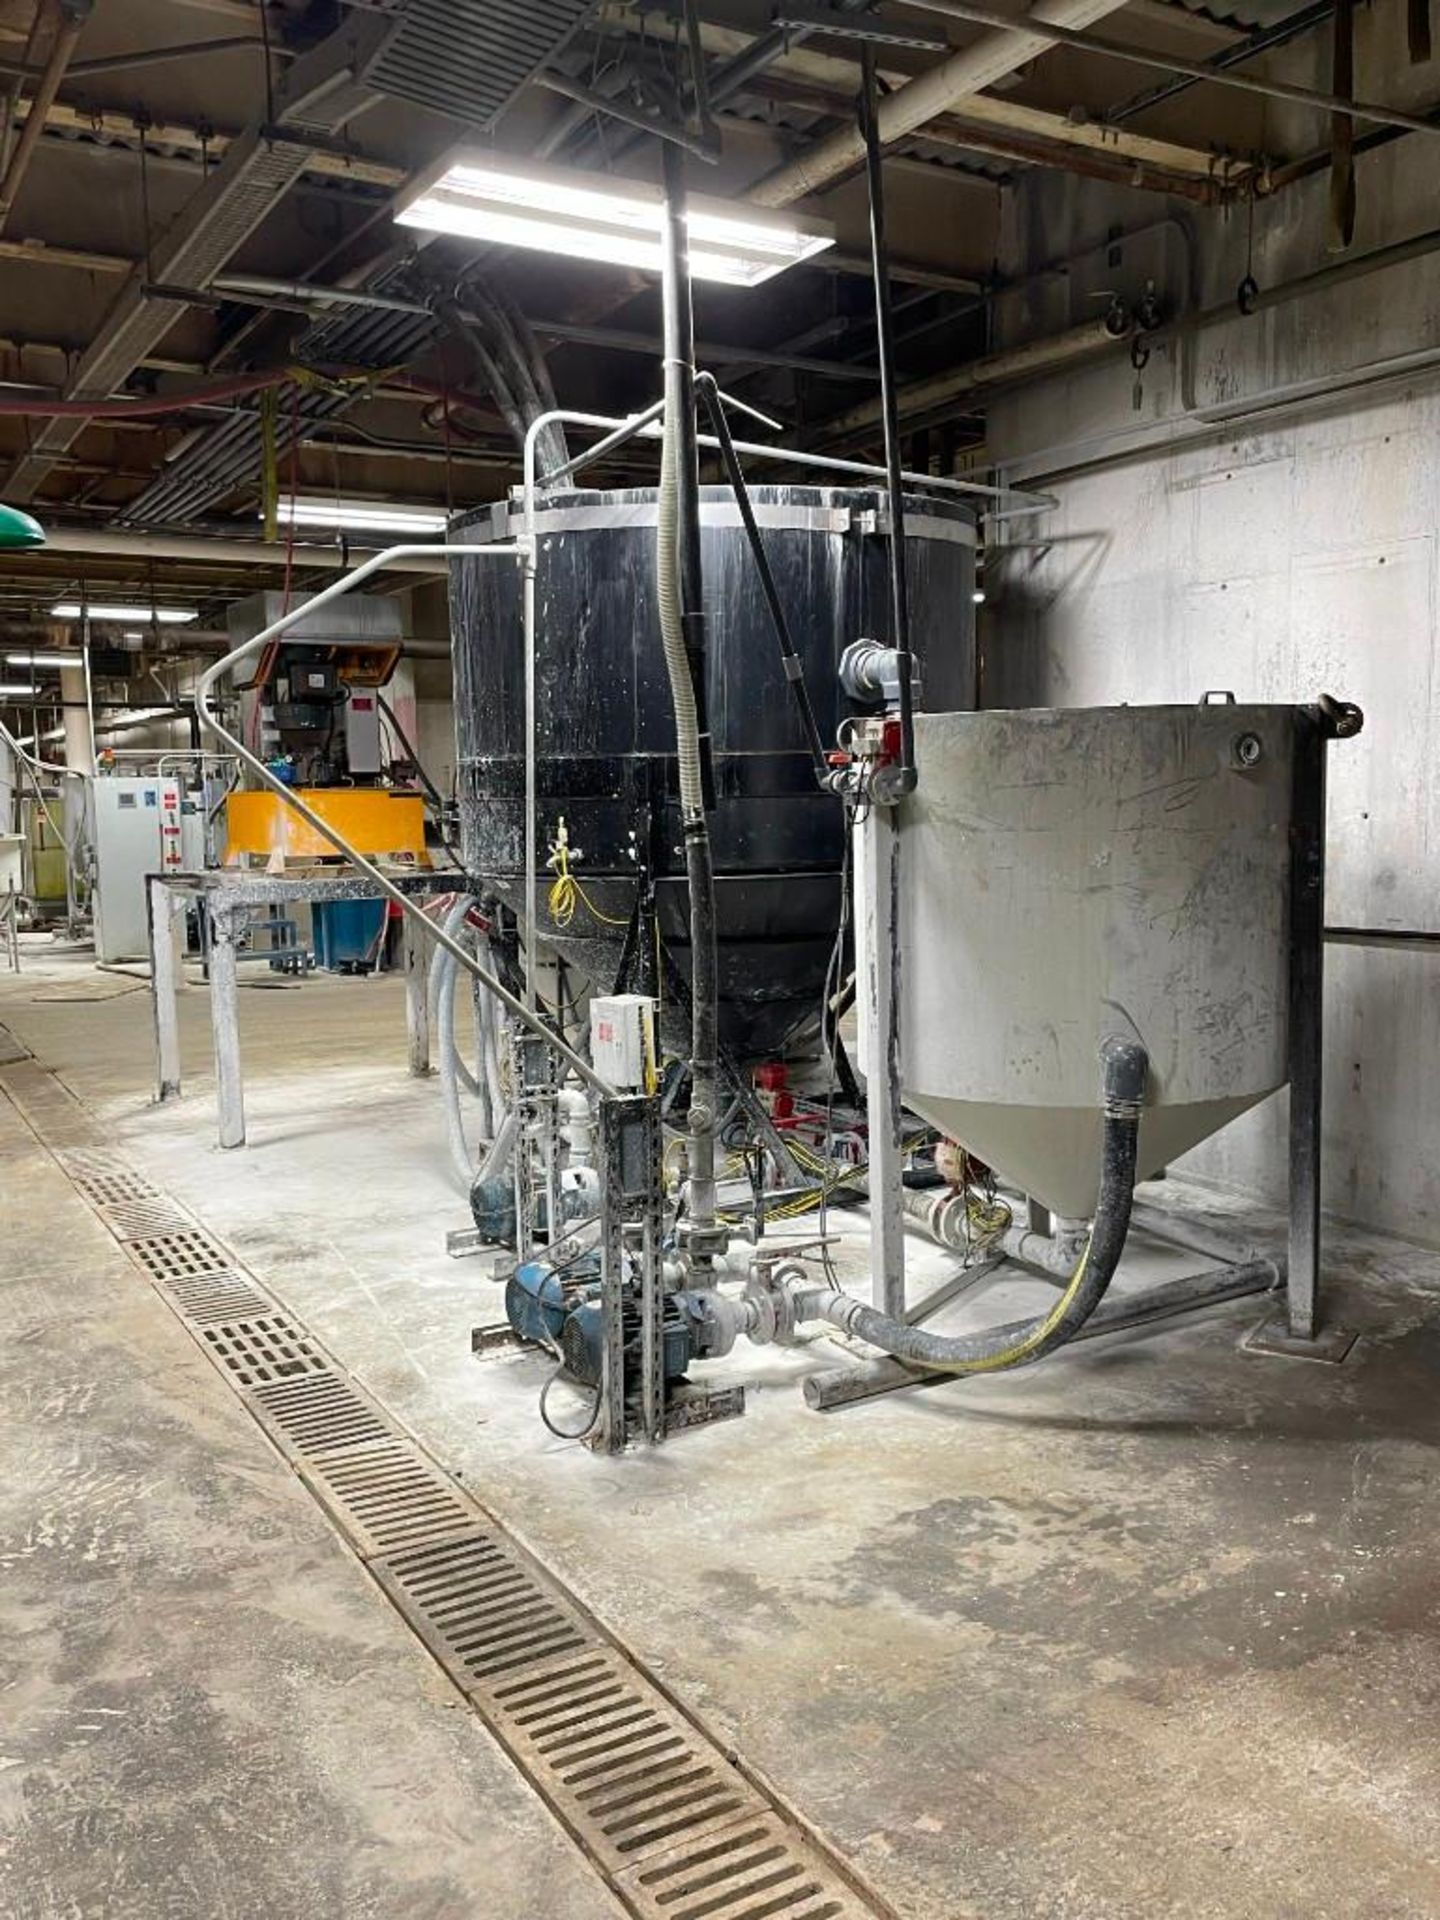 CentraSep Centrifugal Separation 3 Tank Filtration System - Image 5 of 9